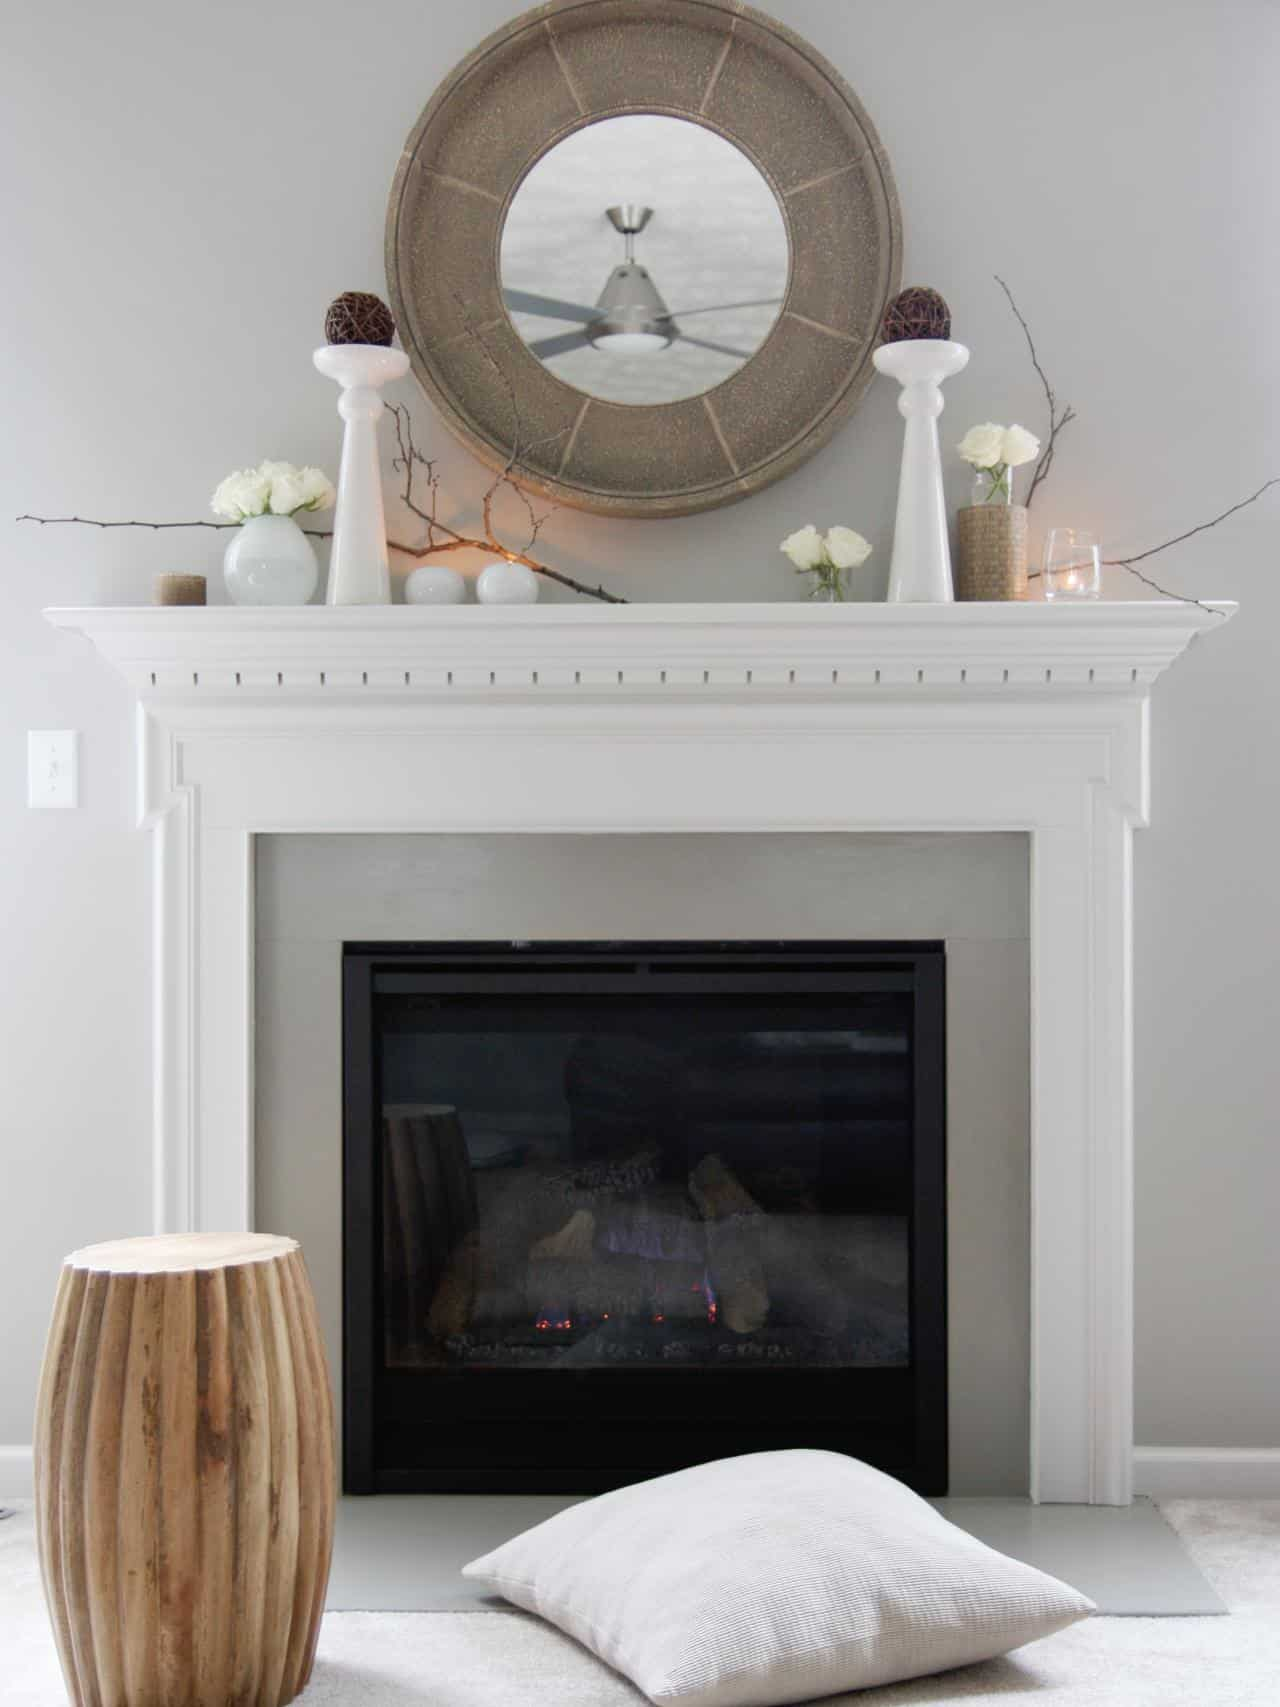 If you have a wall that is already a smooth hue consider having a fireplace that is one shade lighter